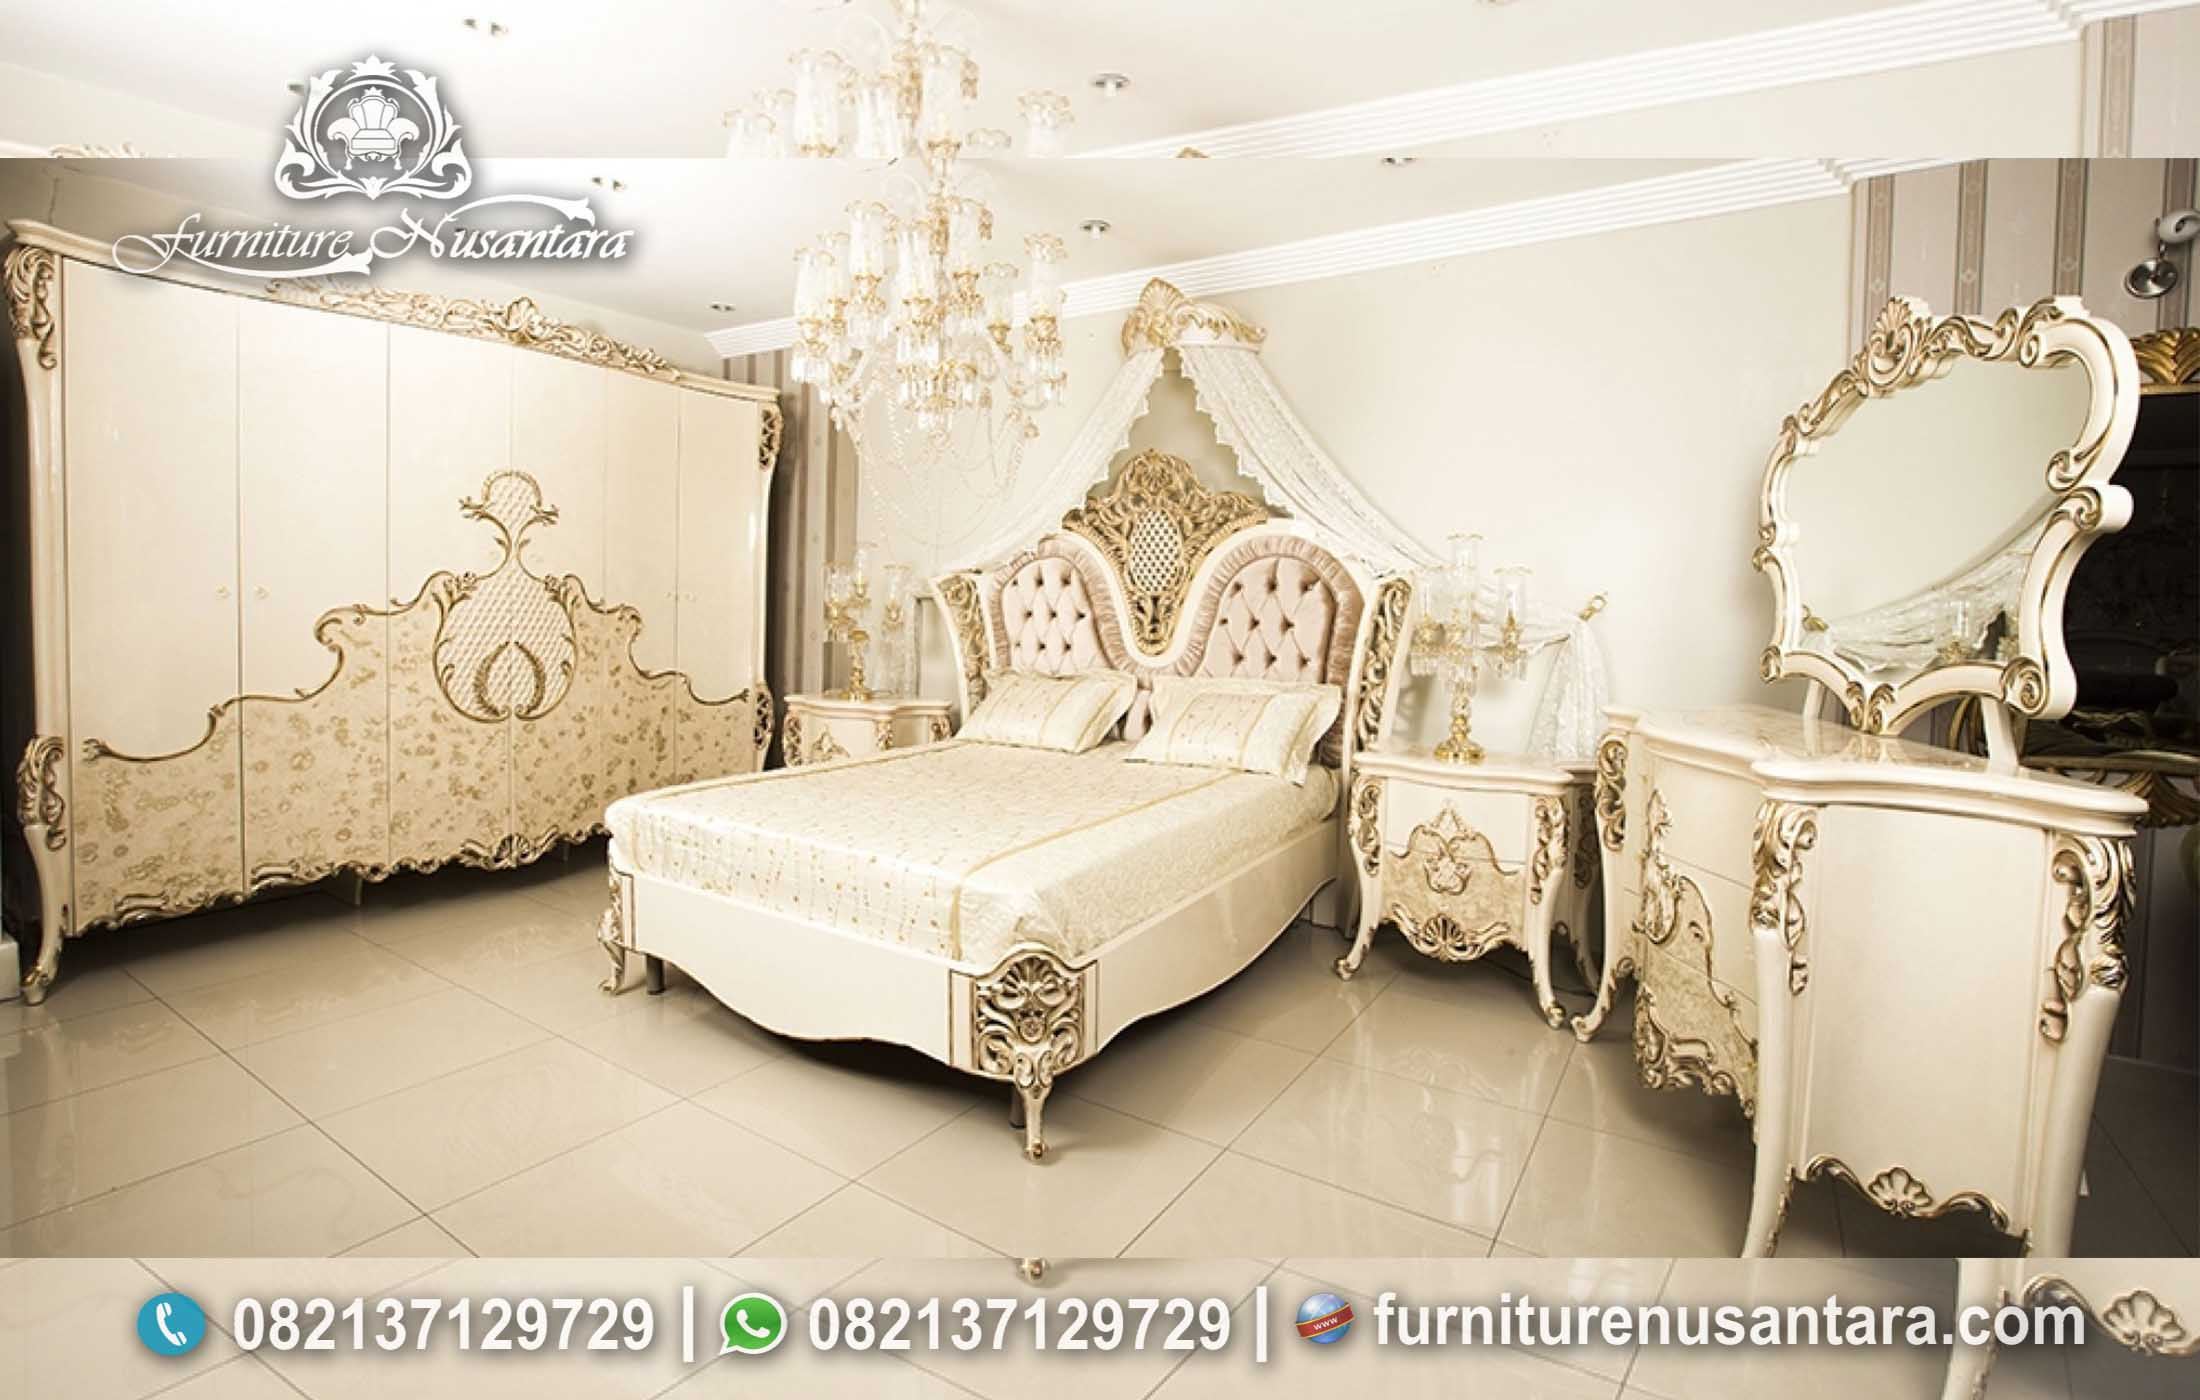 Set Kamar Pengantin Romantis Mewah KS-248, Furniture Nusantara